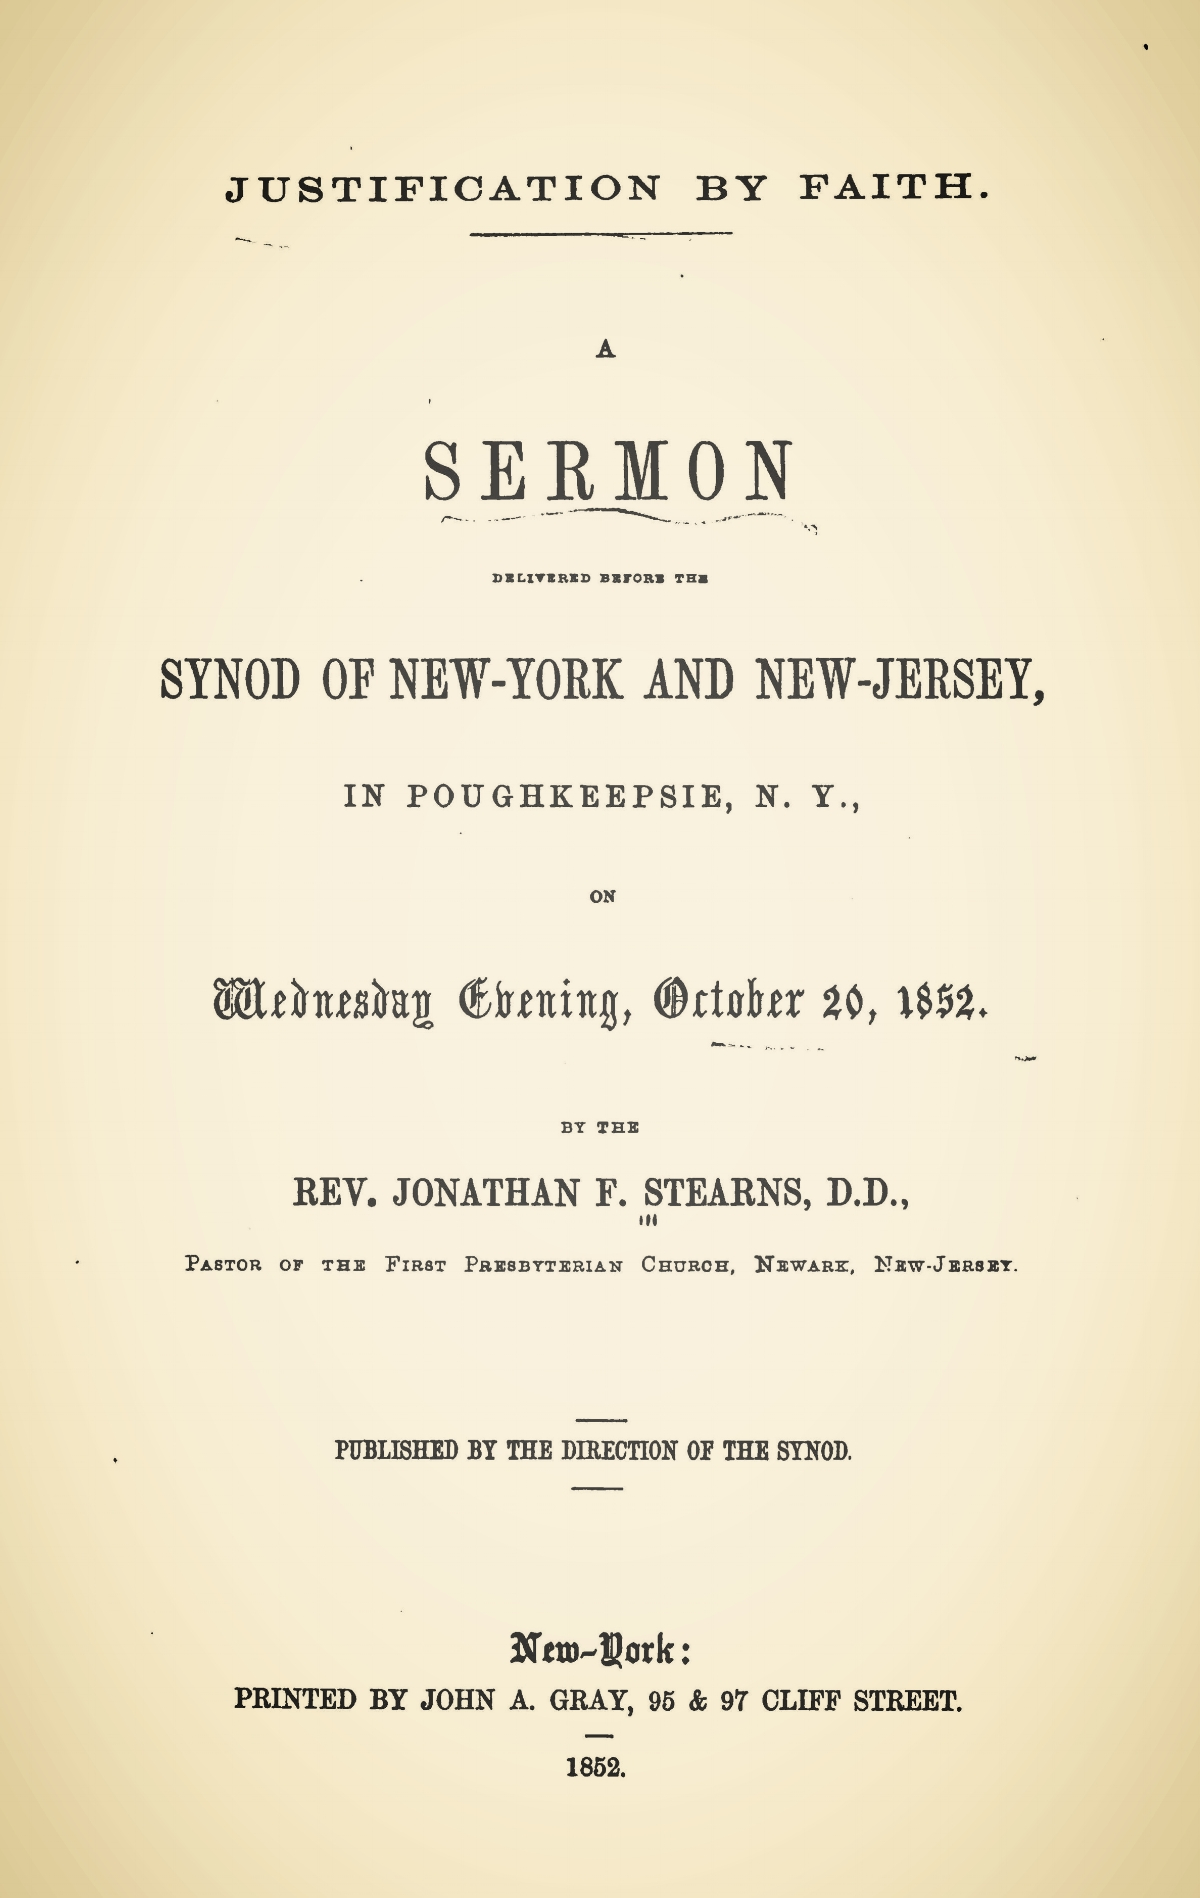 Stearns, Jonathan French, Justification by Faith a Sermon Title Page.jpg